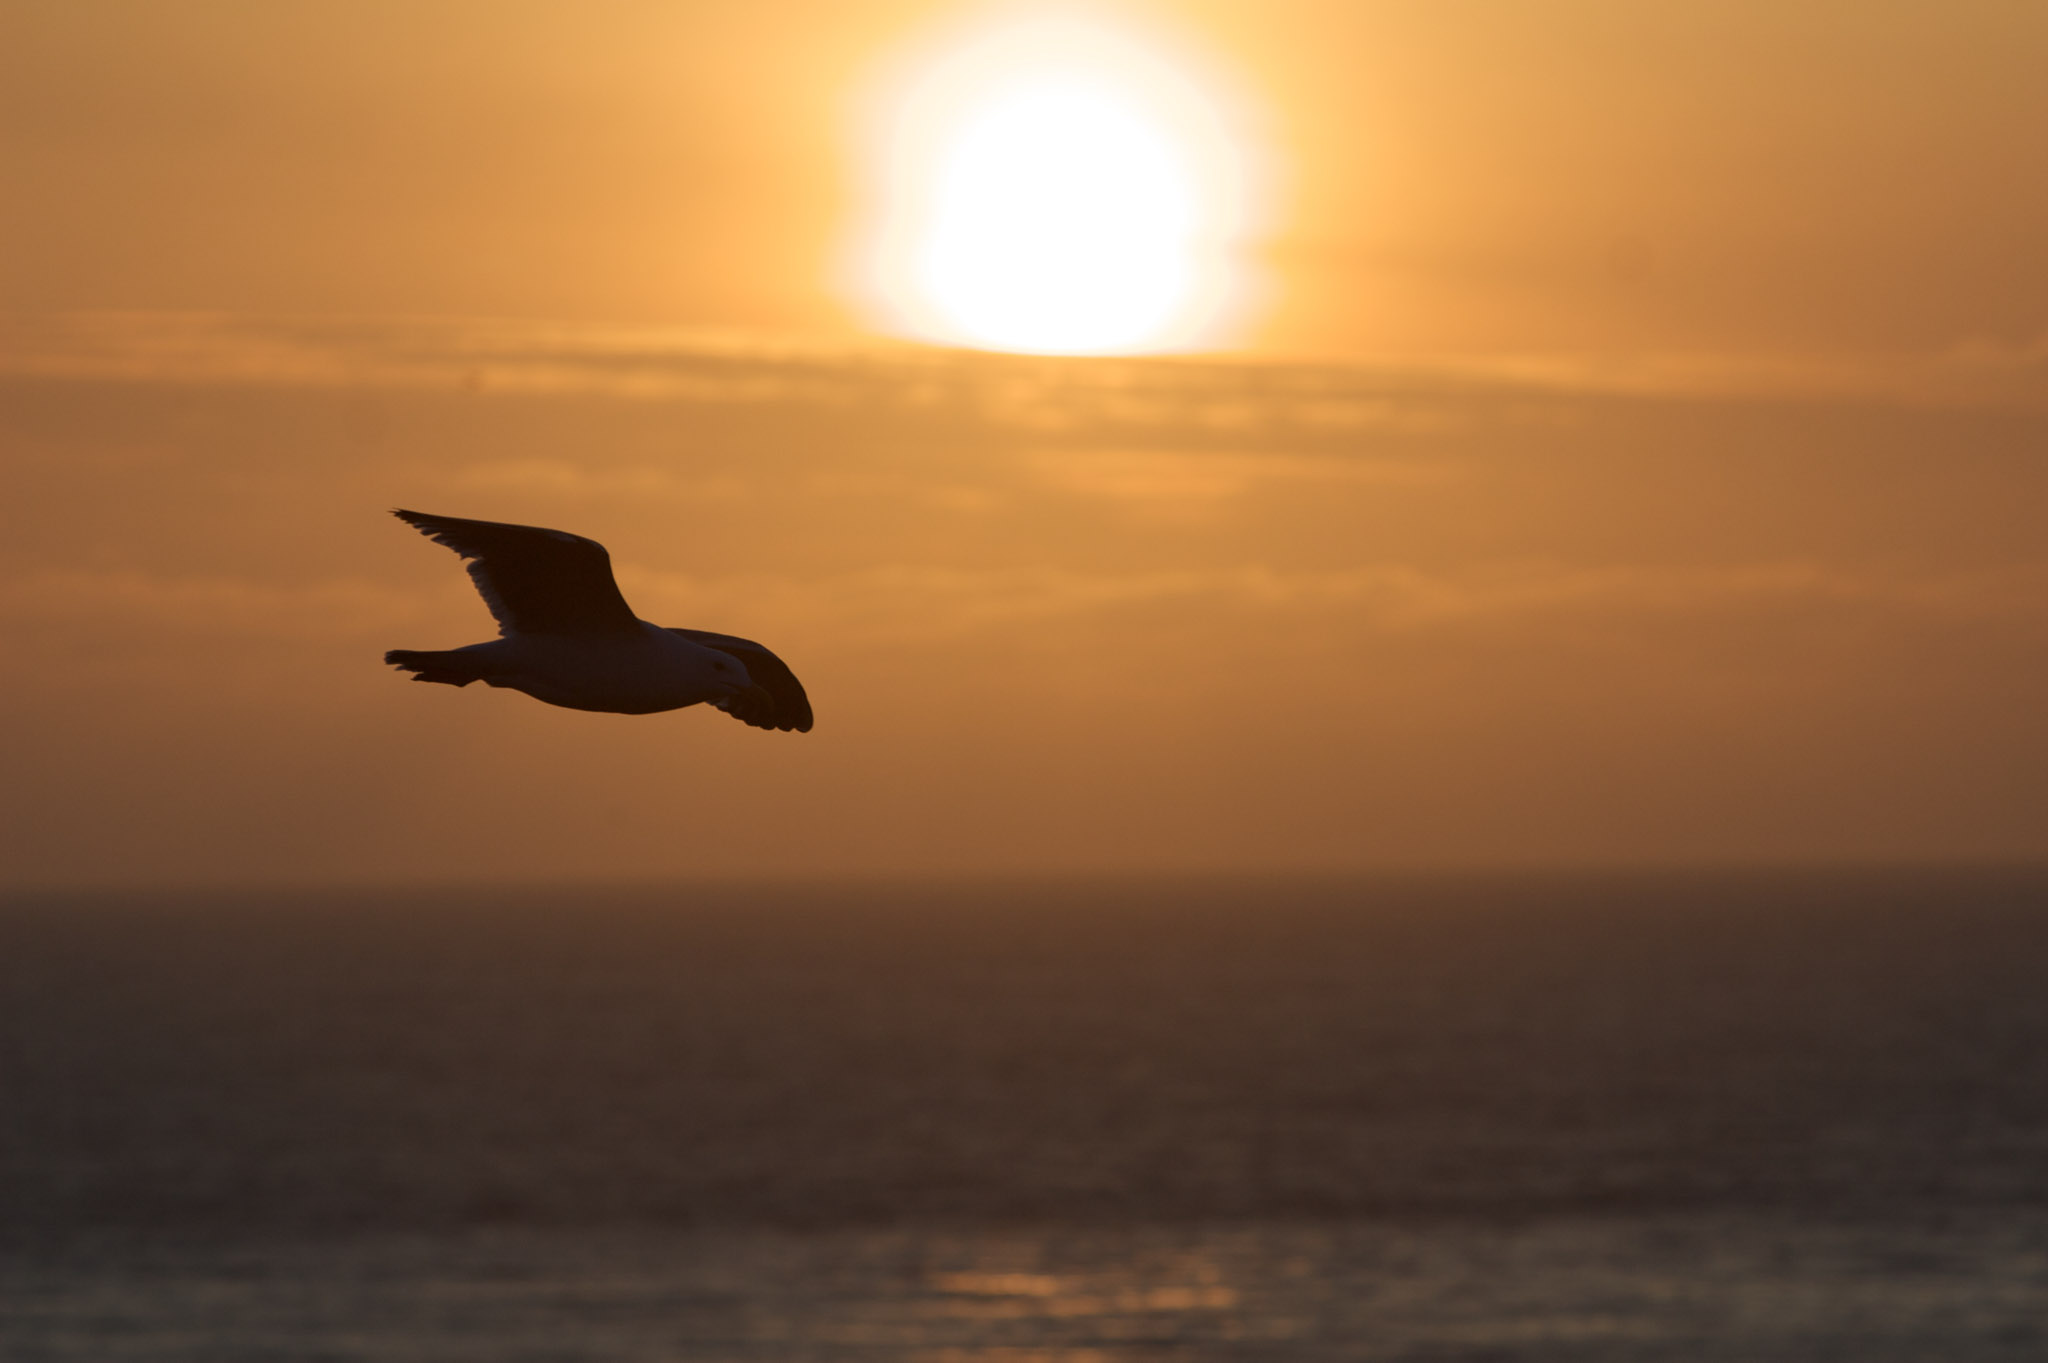 A bird flying by the sunset